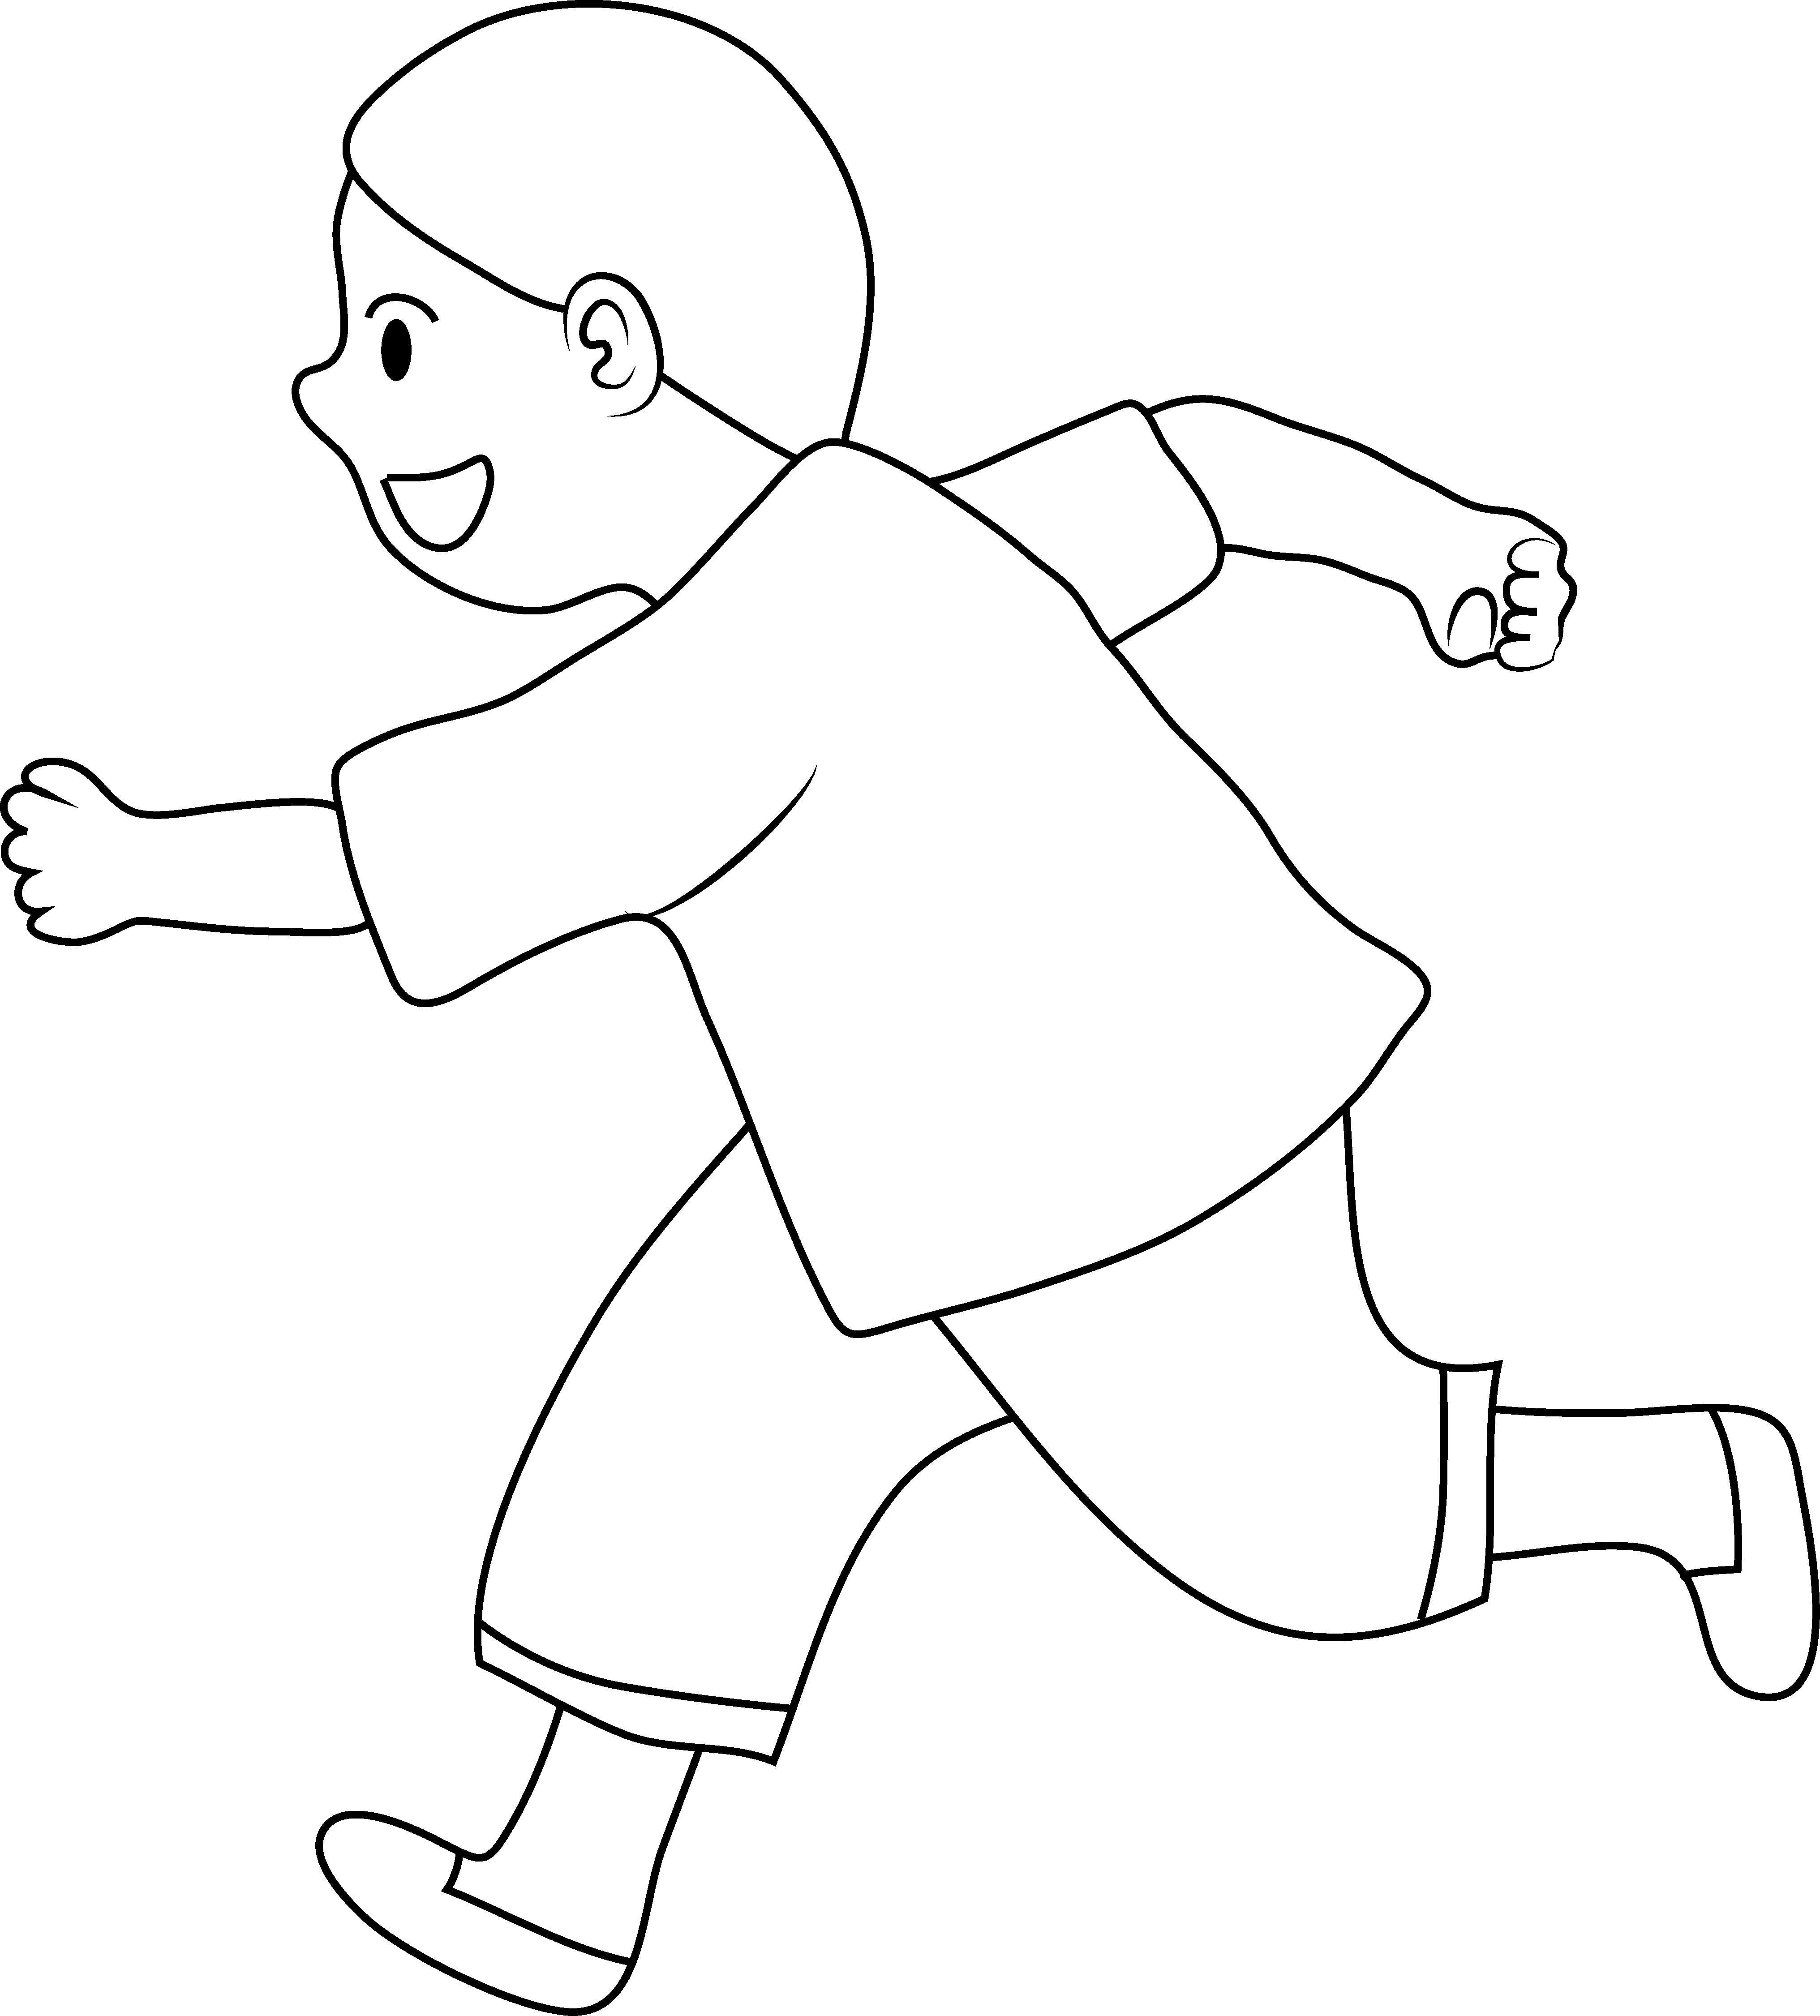 Line Art For Kids : Children playing clipart black and white panda